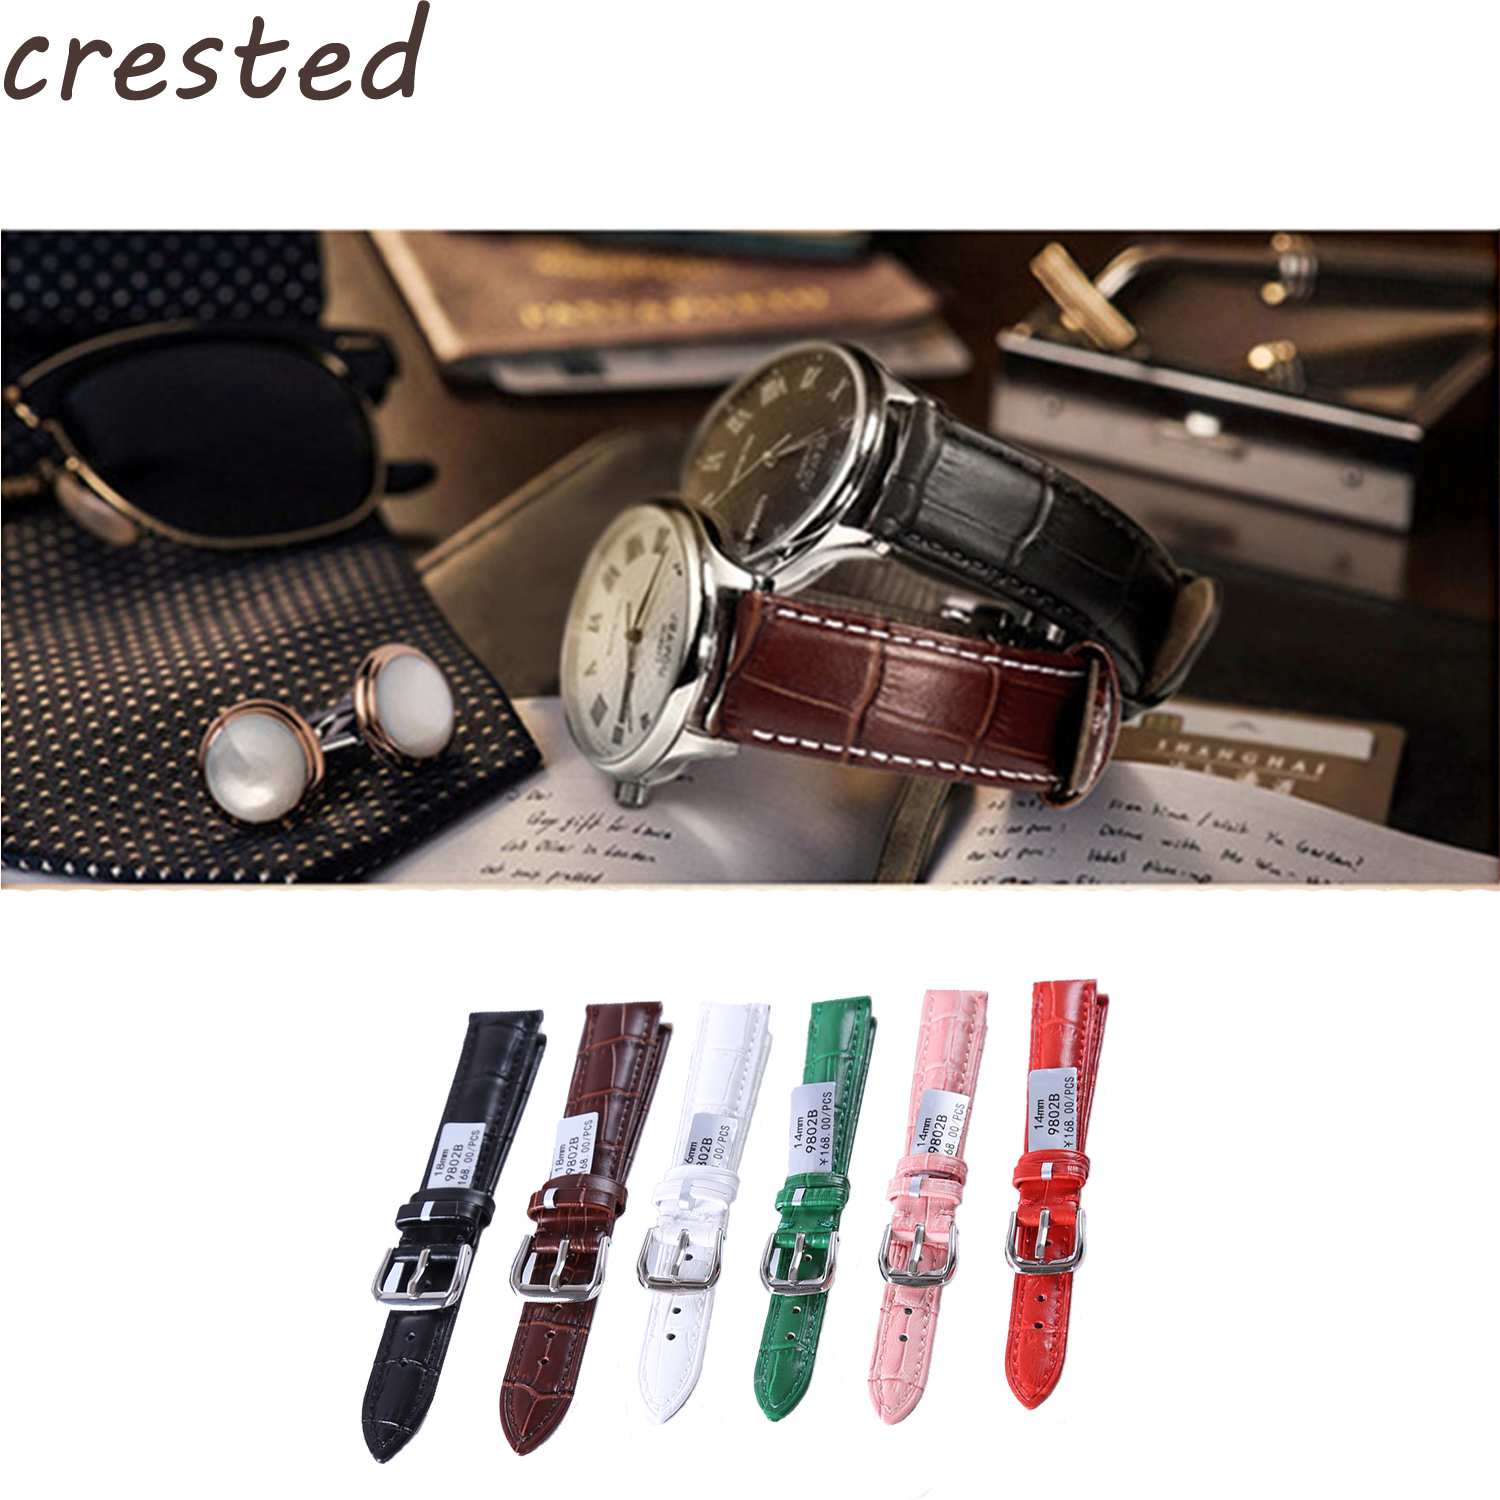 CRESTED genuine leather strap Seven colors watch bracelet belt new watch strap band 18mm 20mm 22mm watch accessories wristband alk new watch band genuine leather strap black watch bracelet belt watchbands 18mm 20mm 22mm watch accessories wristband